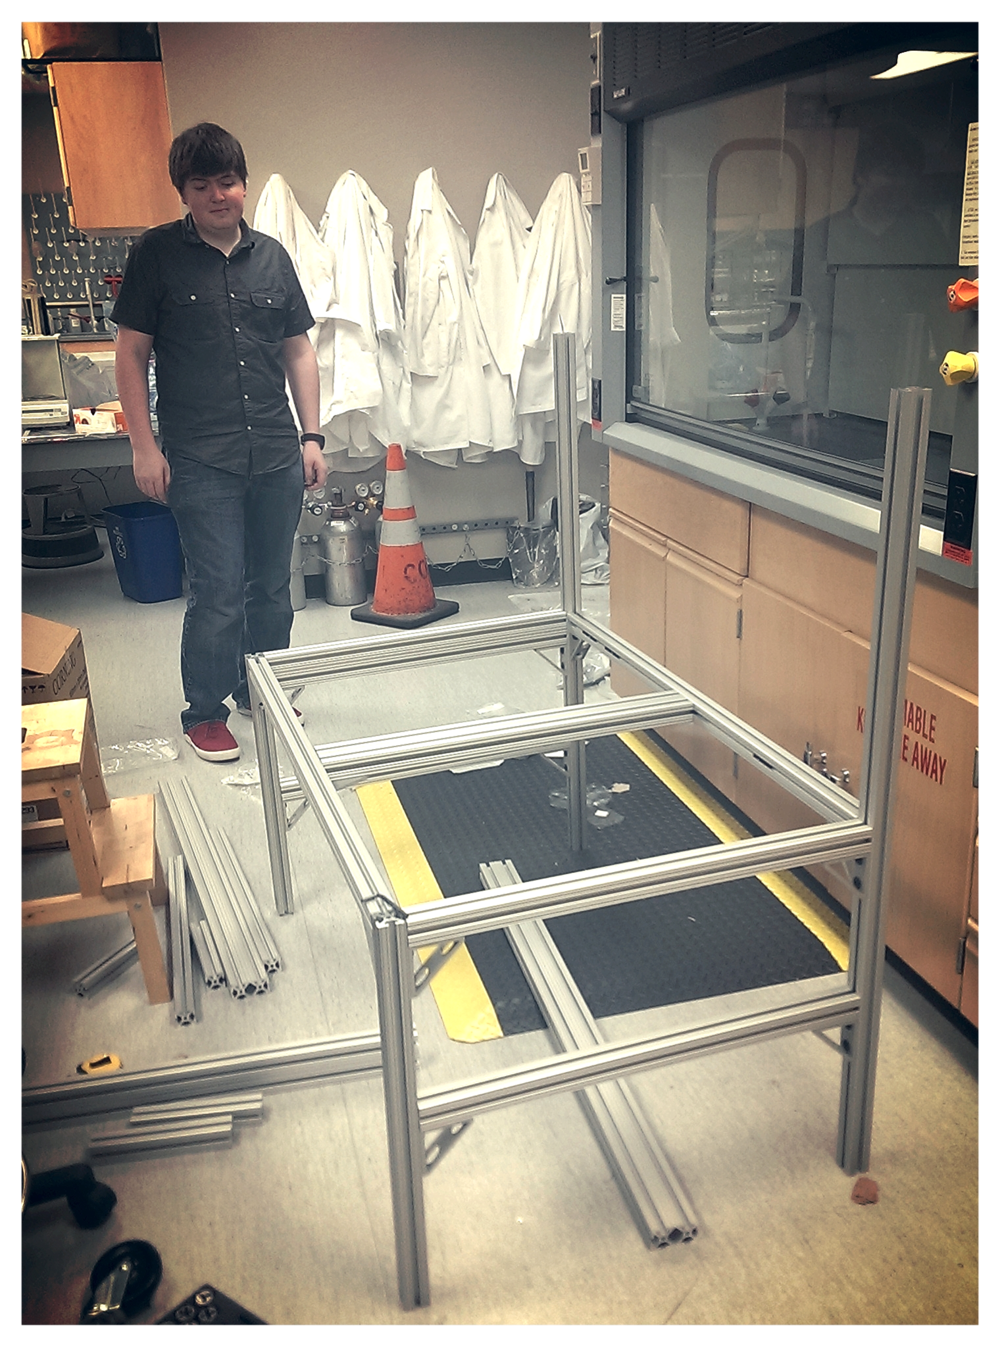 Ian admiring the sample prep cart-in-progress that he helped design.